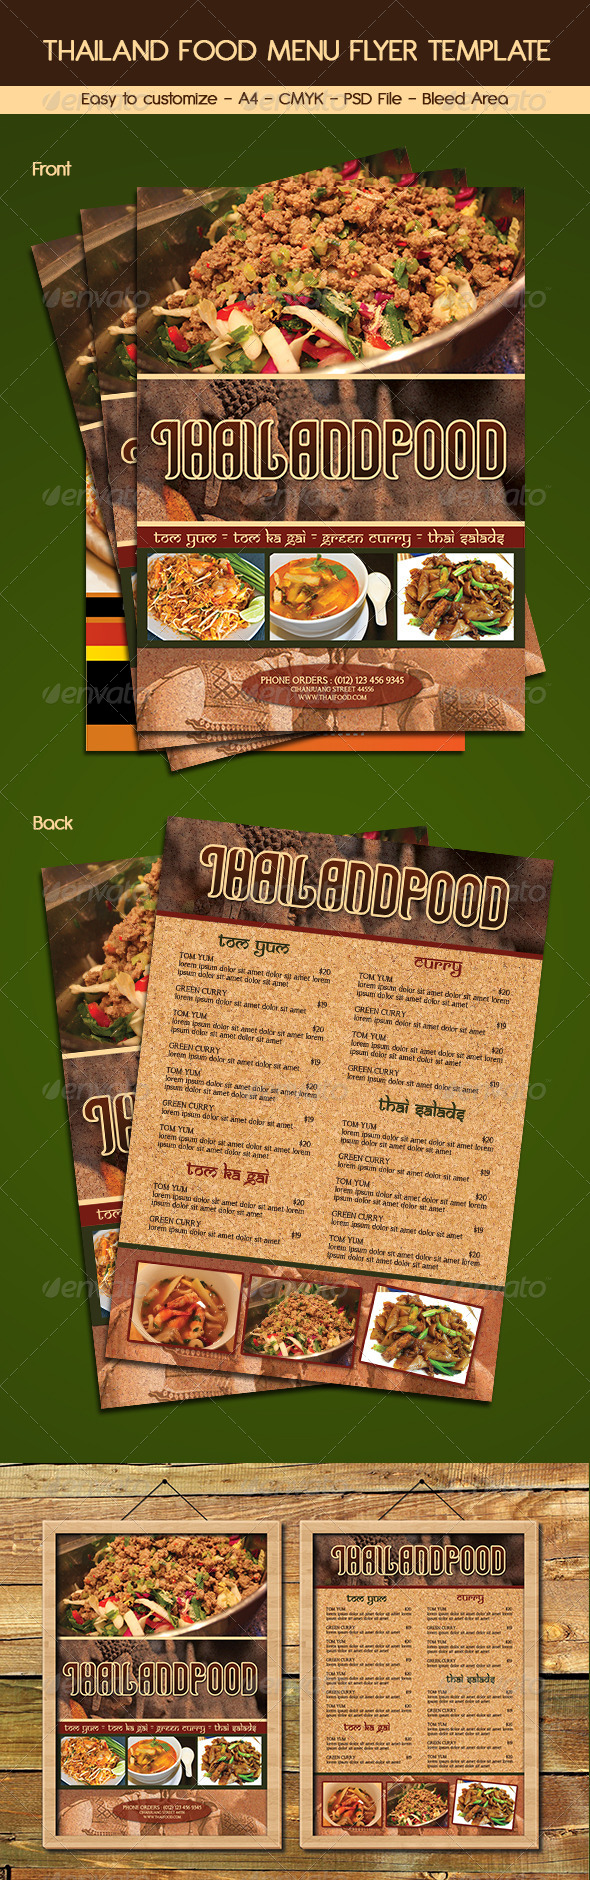 GraphicRiver Thailand Food Menu Flyer Template 6365869